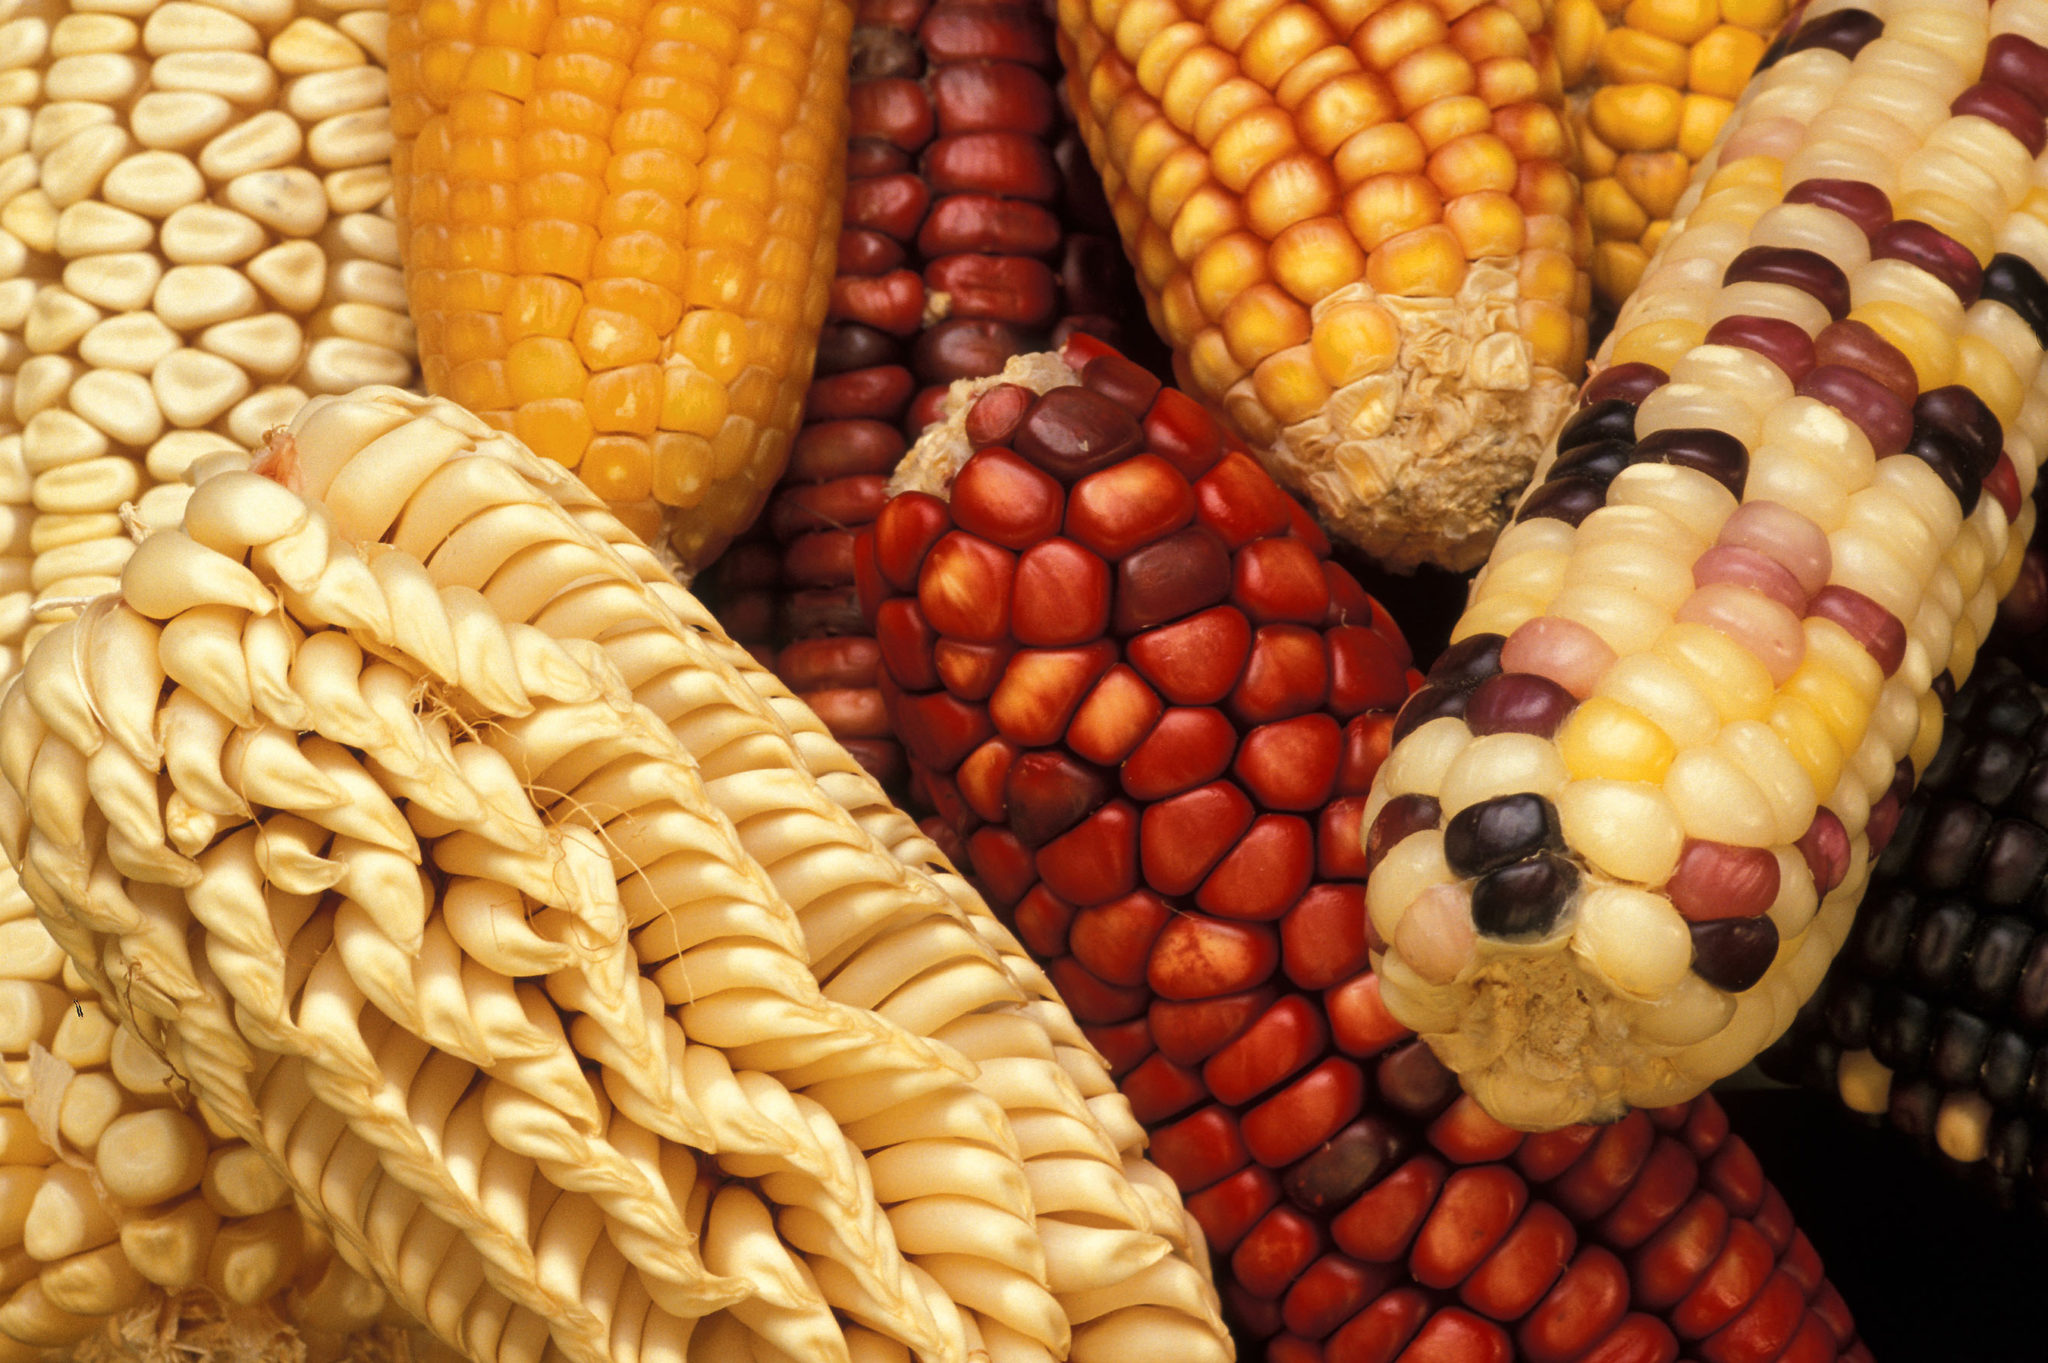 multicolored and different types of ears of corn (zeas mays)